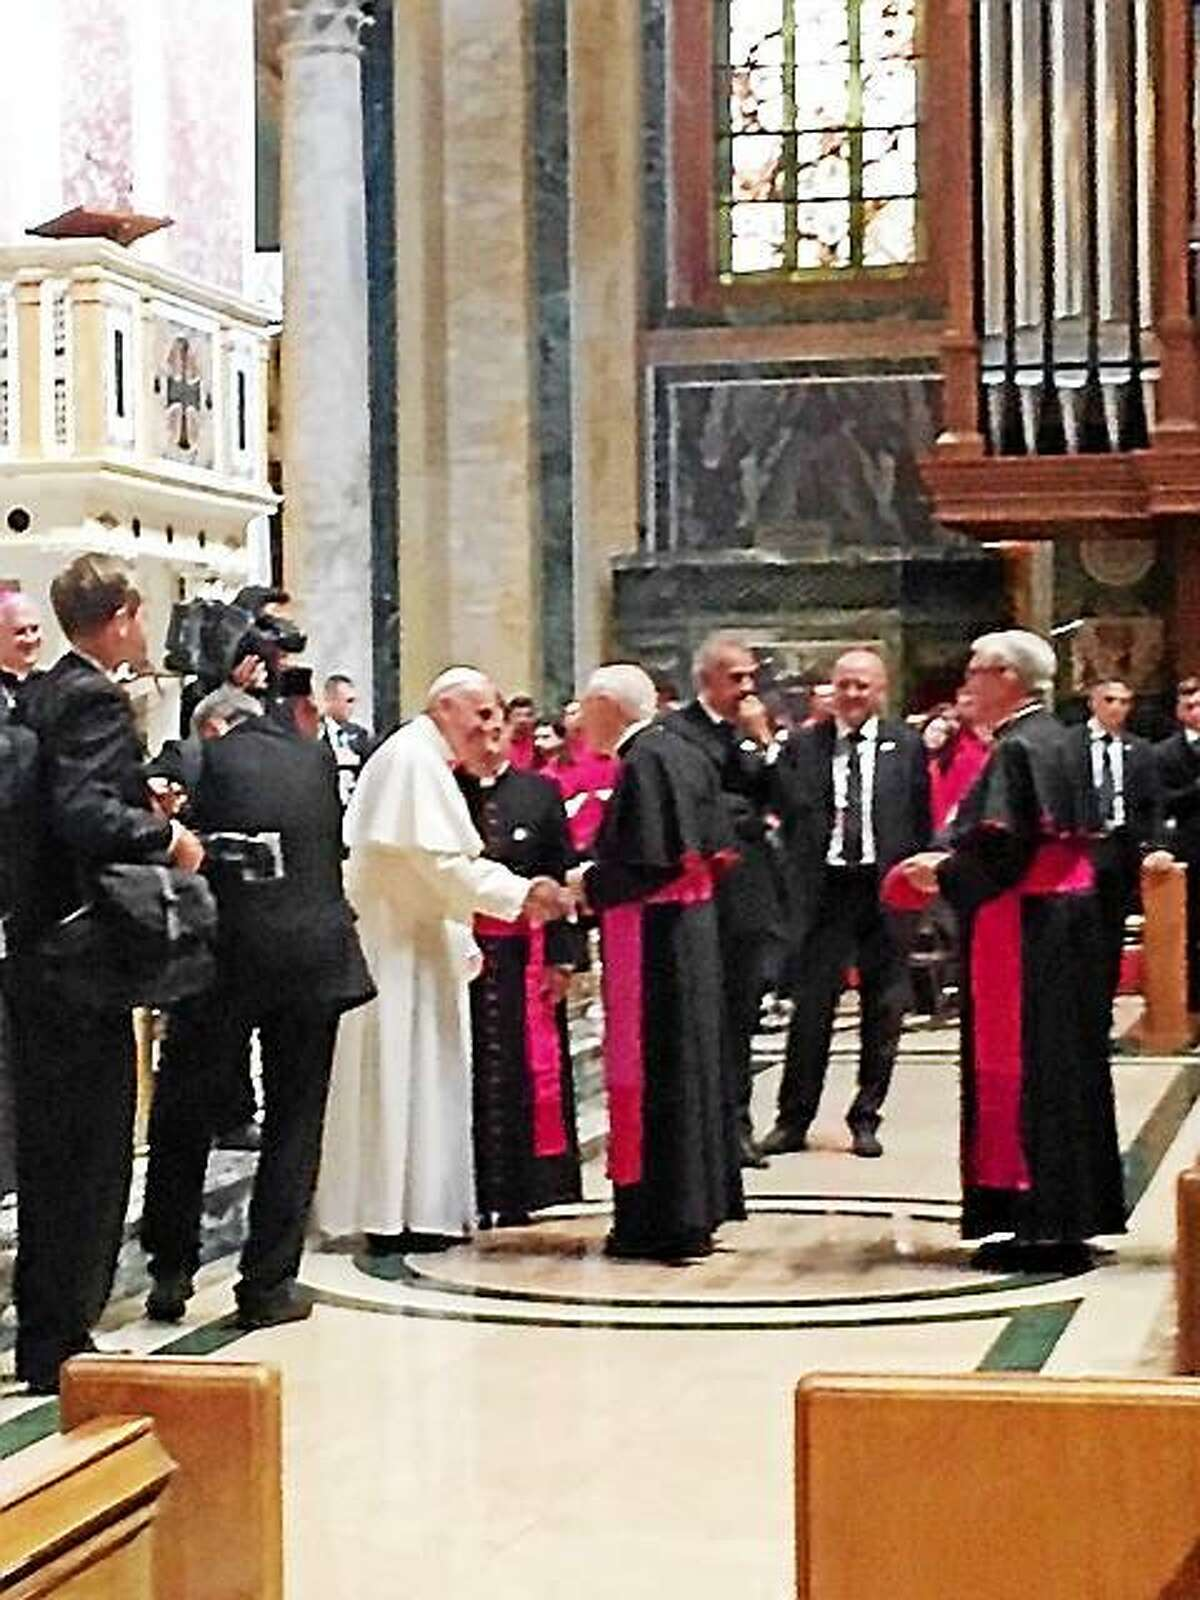 Archbishop Leonard P. Blair of the Archdiocese of Hartford being presented to Pope Francis at the Cathedral of St. Matthew the Apostle in Washington, D.C. during the Popeís meeting with U.S. bishops last Wednesday.